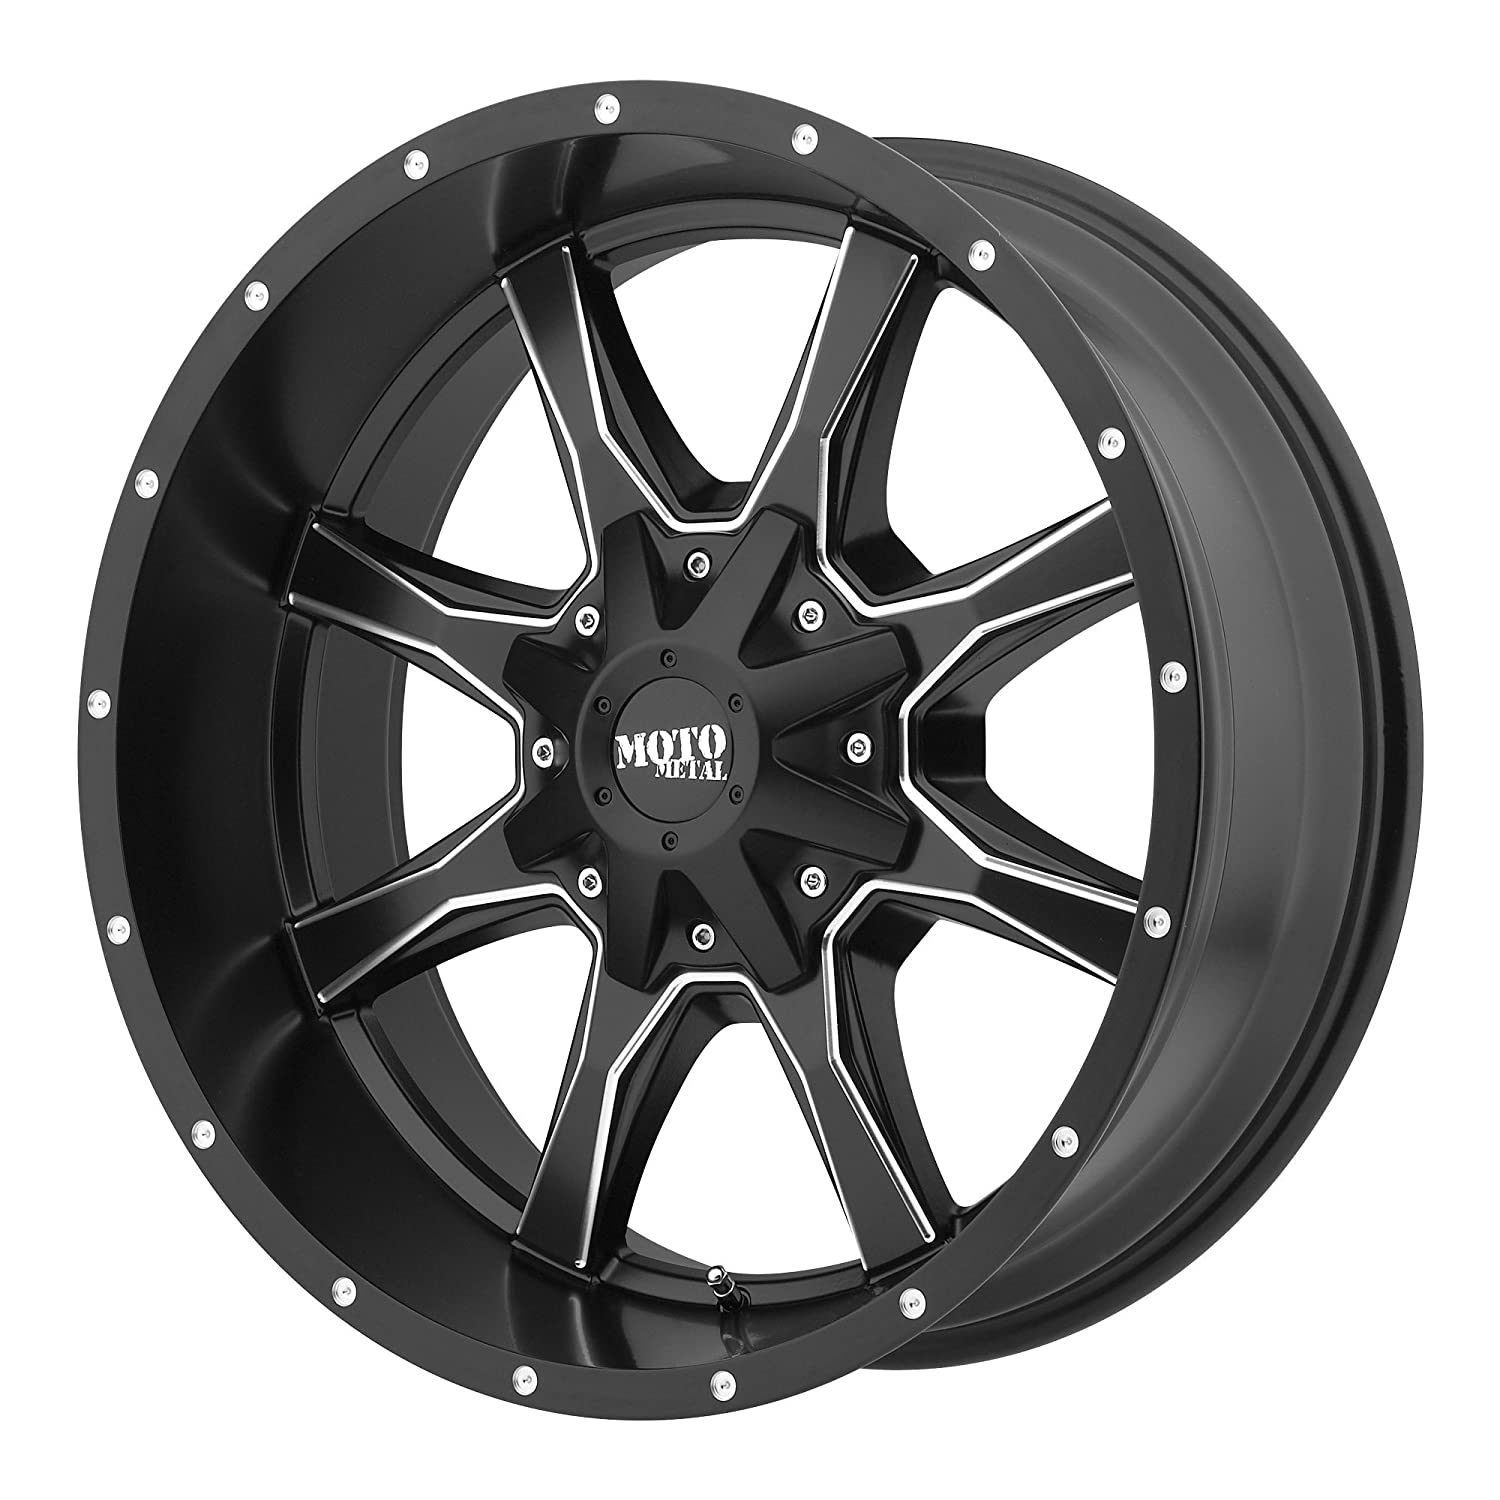 17x9//5x127,139.7mm, -12mm offset Moto Metal MO970 Semi Gloss Black Wheel Machined With Milled Accents